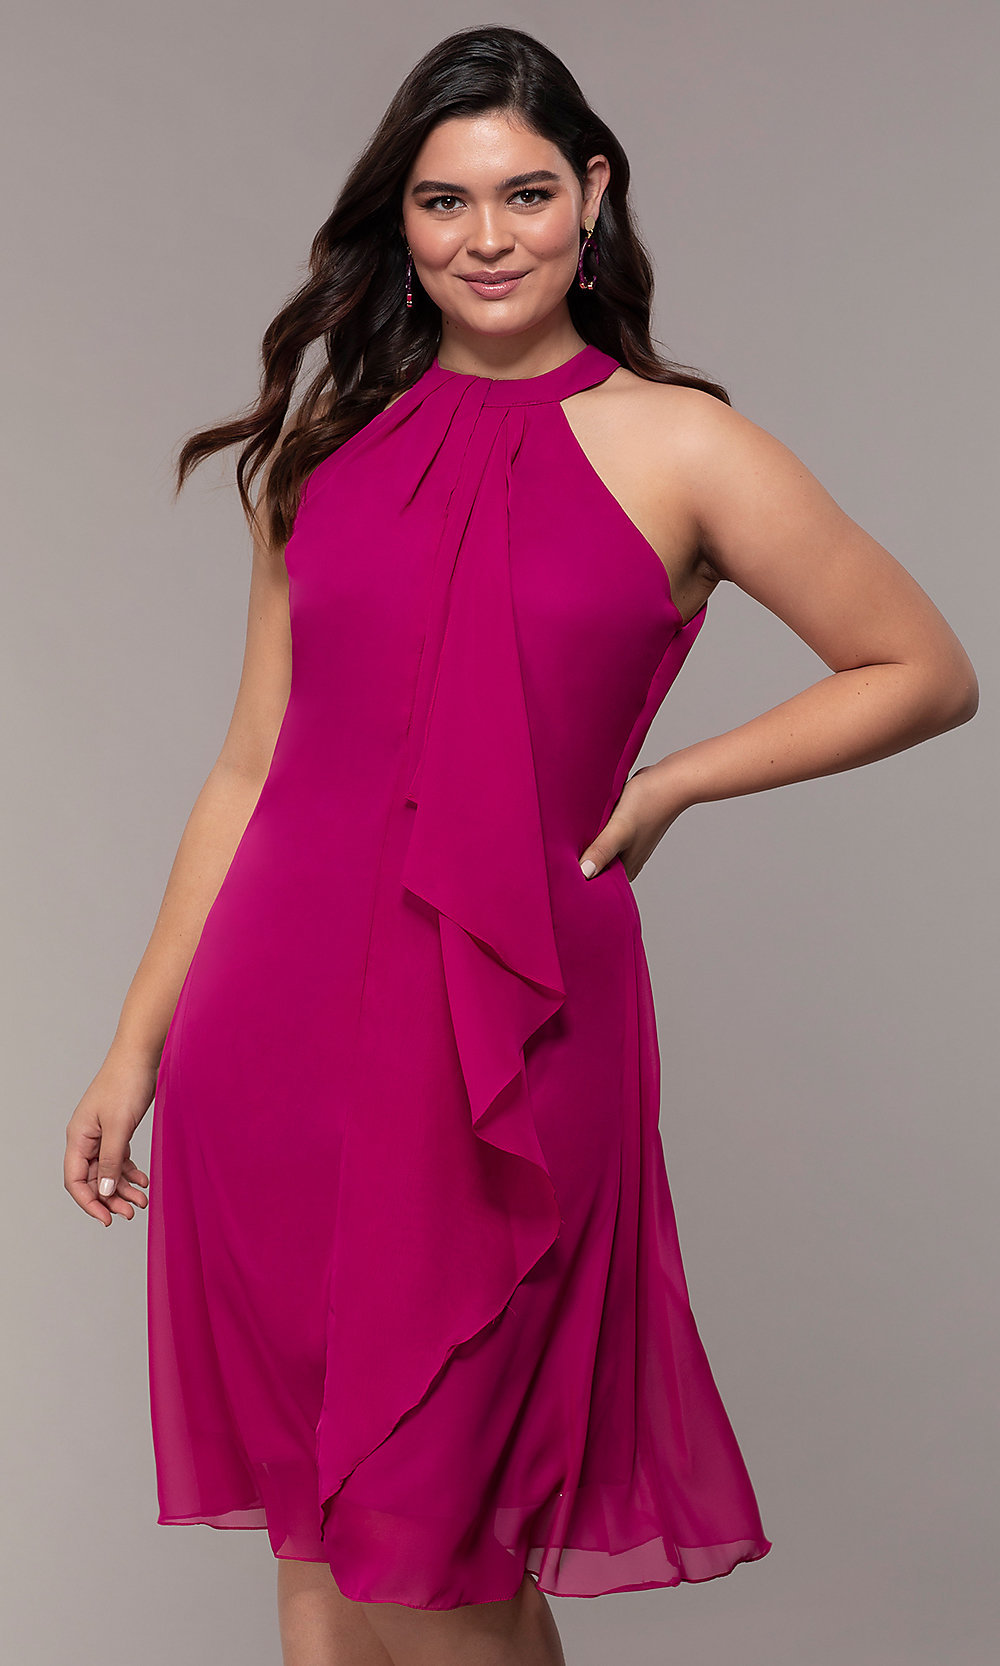 Tap To Expand: Magenta Short Wedding Dresses At Websimilar.org